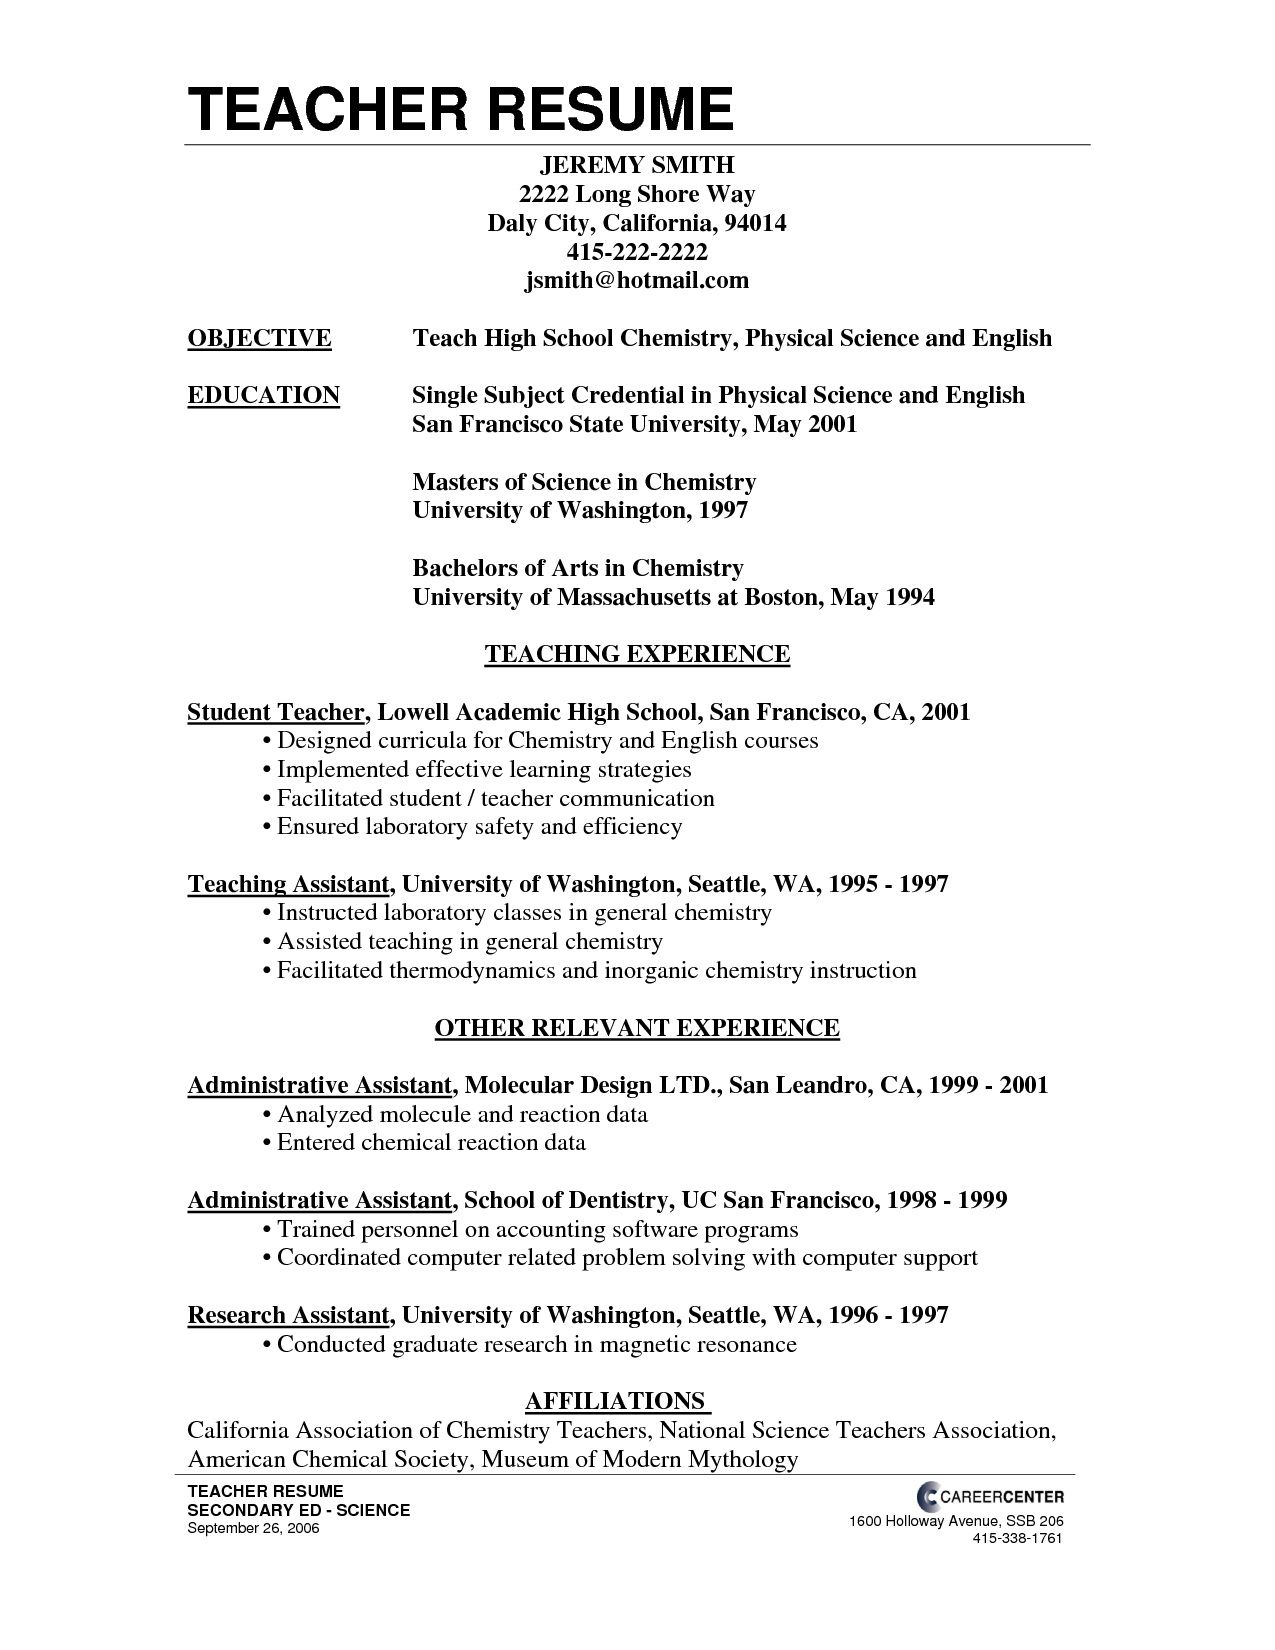 Education On Resume High School High School Teacher Resume Http Jobresumesample